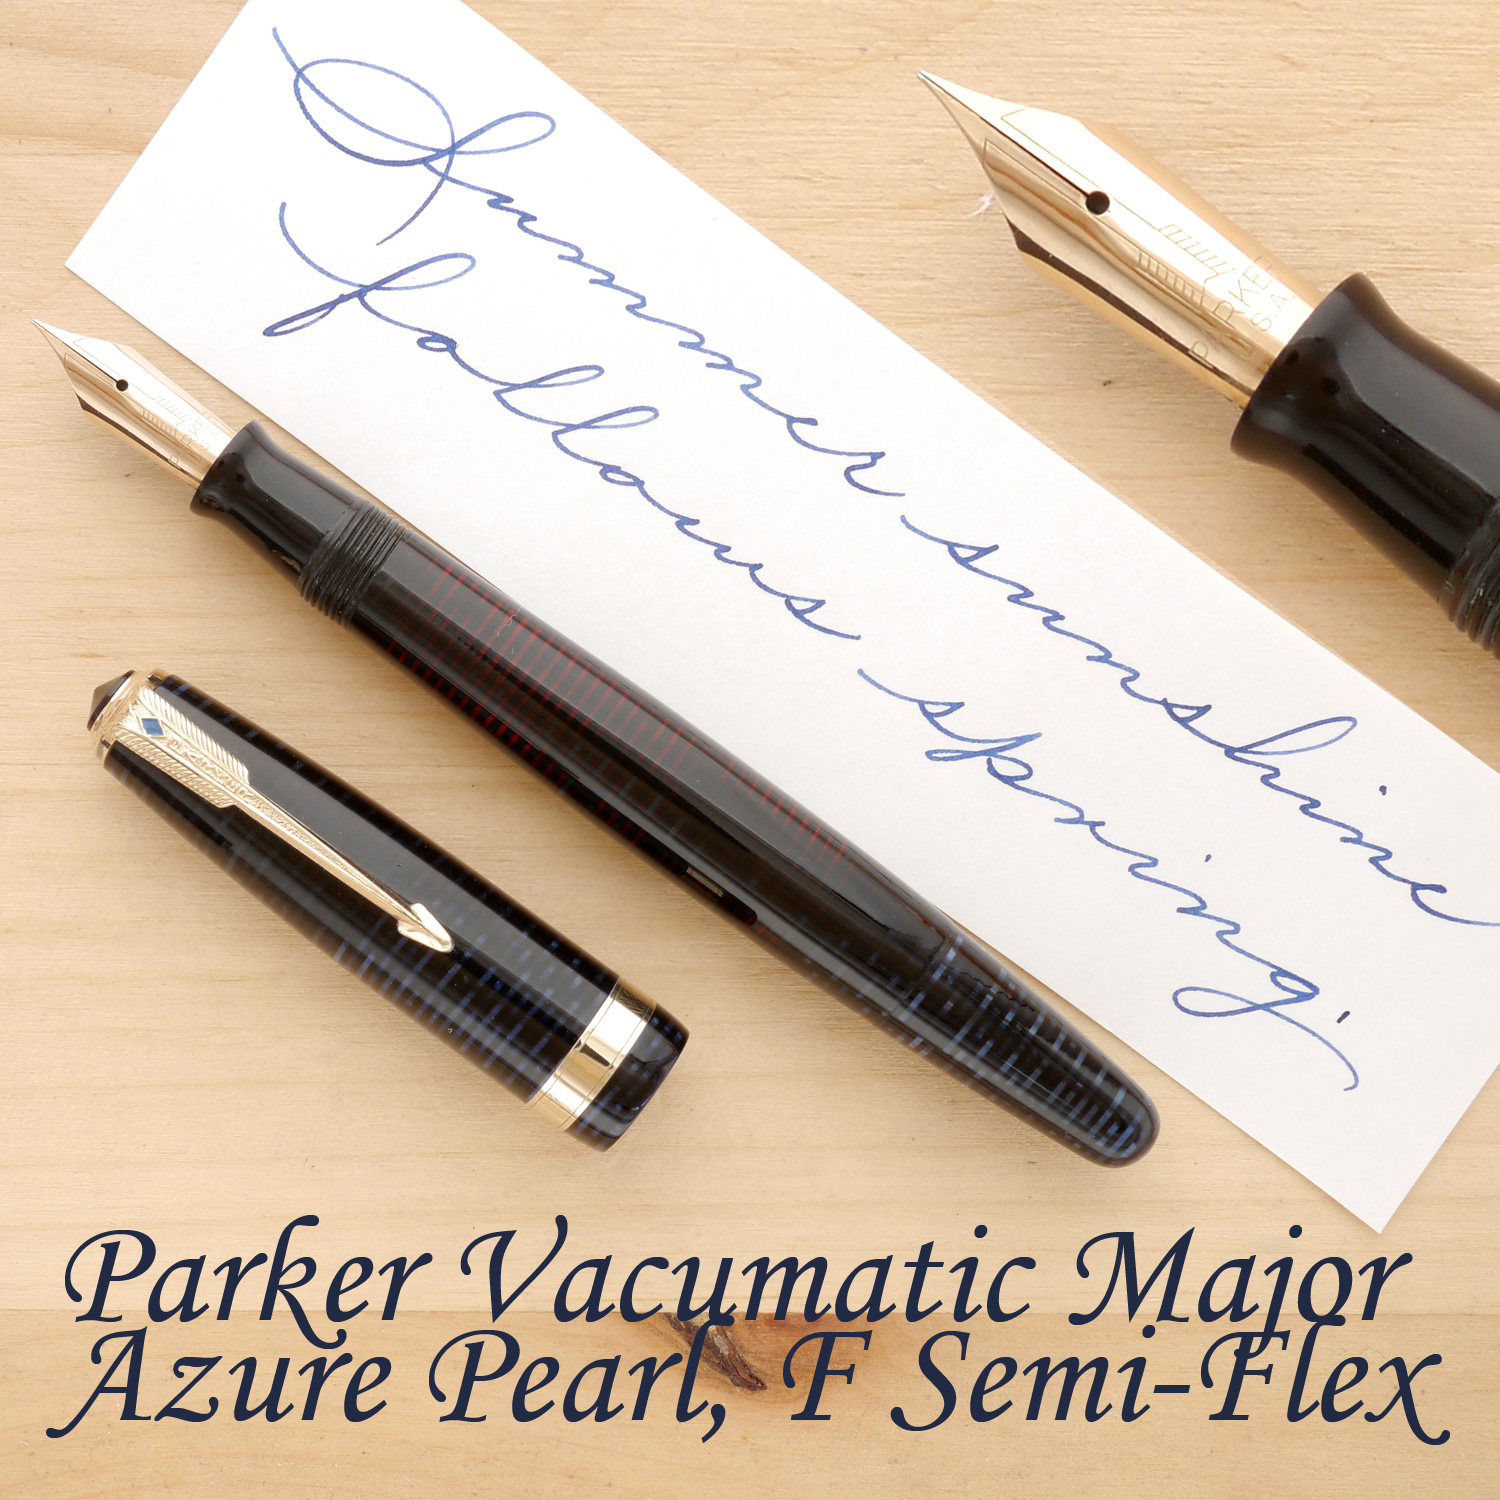 Parker Vacumatic Major Fountain Pen, Azure Pearl, F, Semi-Flex